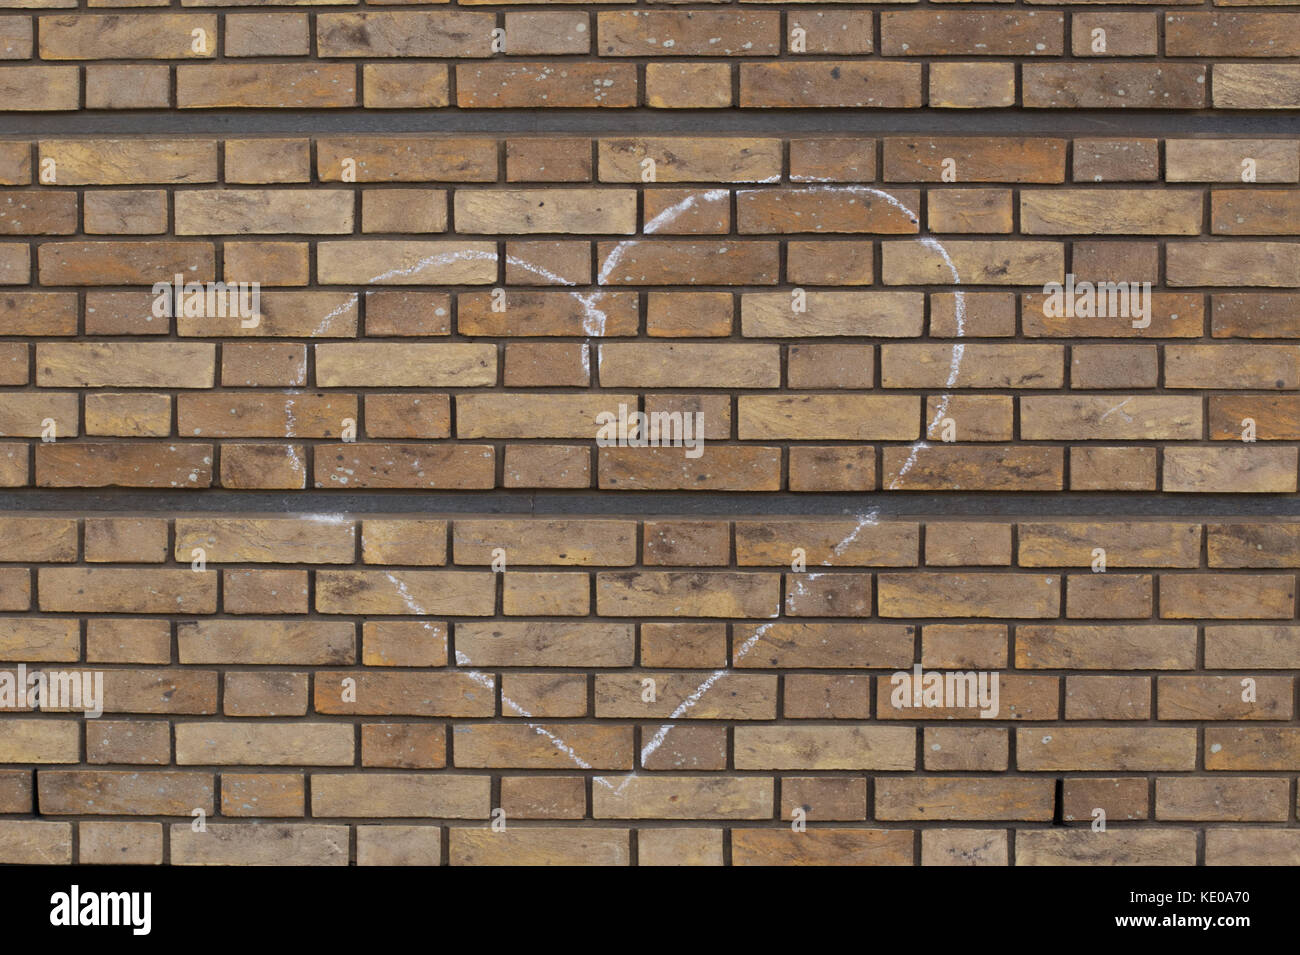 heart drawn in chalk on a brick wall - Stock Image